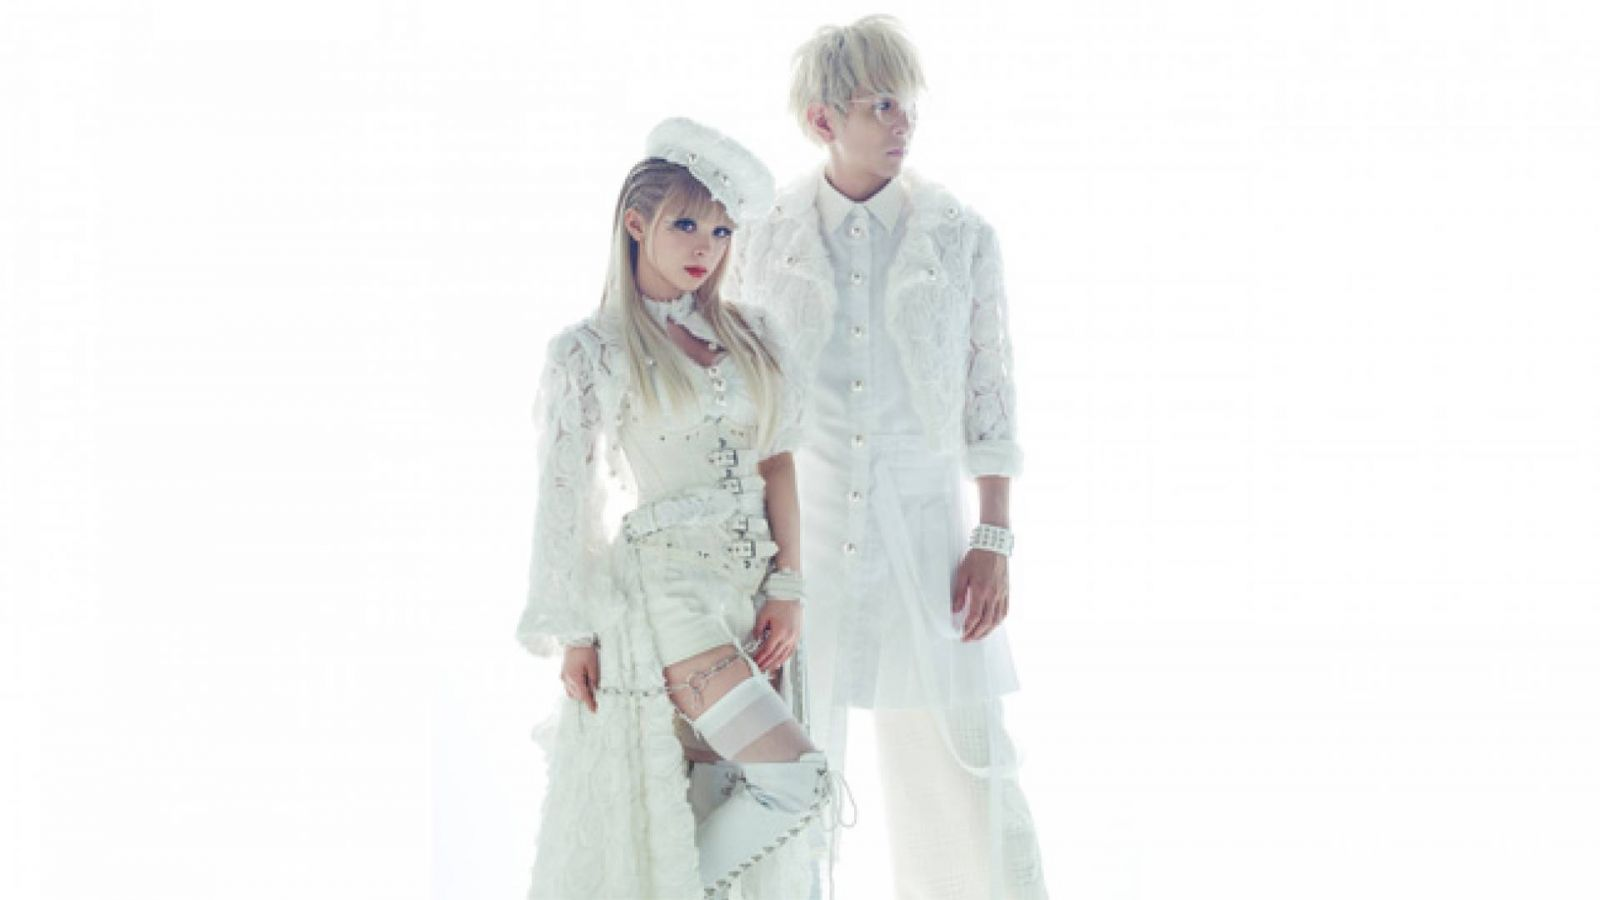 Interview with GARNiDELiA © 2017 Sony Music Entertainment (Japan) Inc. All rights reserved.